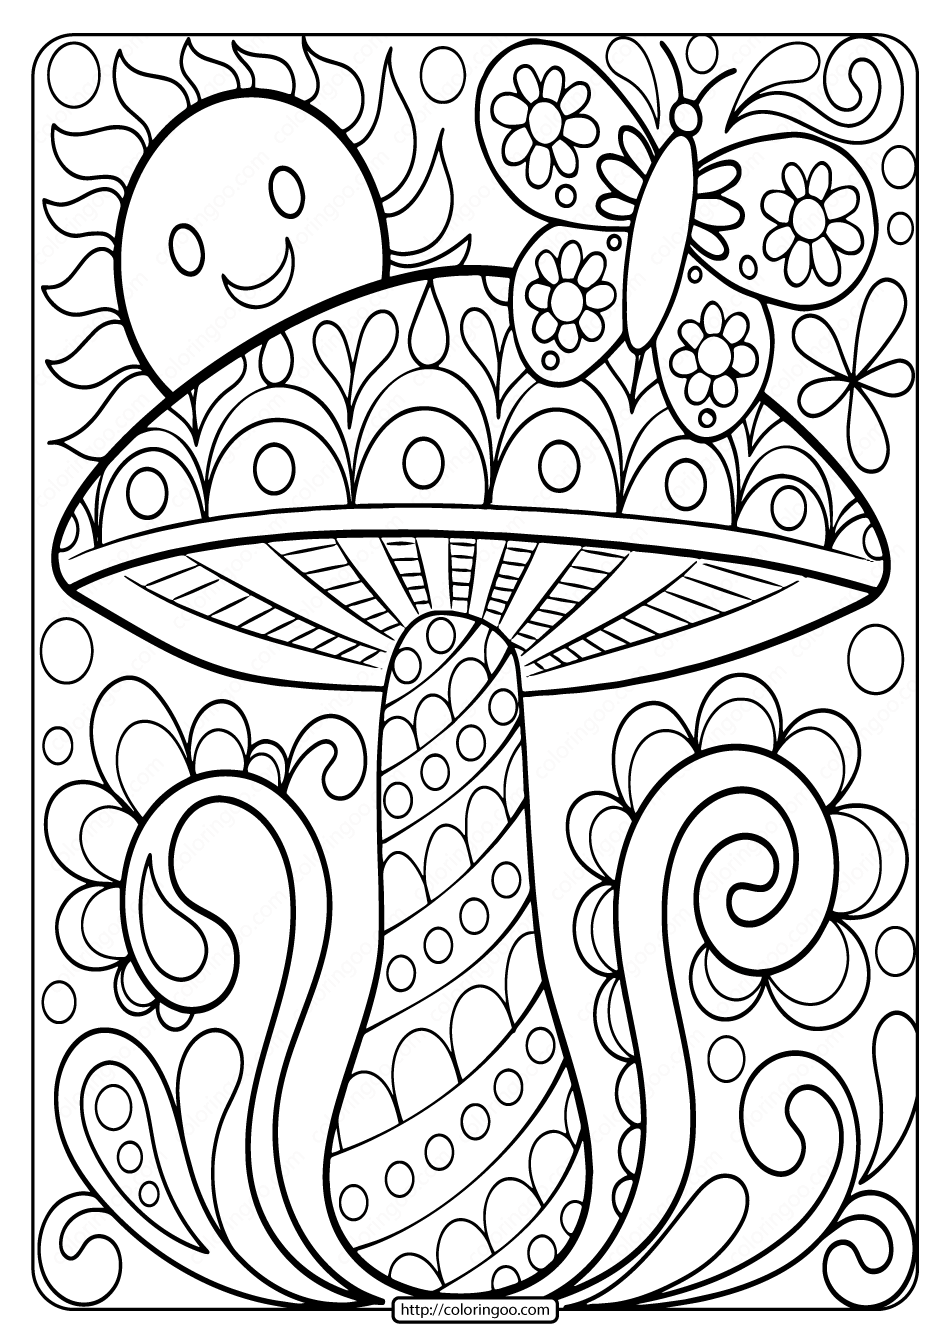 coloring pages printable free zebra coloring pages free printable kids coloring pages pages printable coloring free